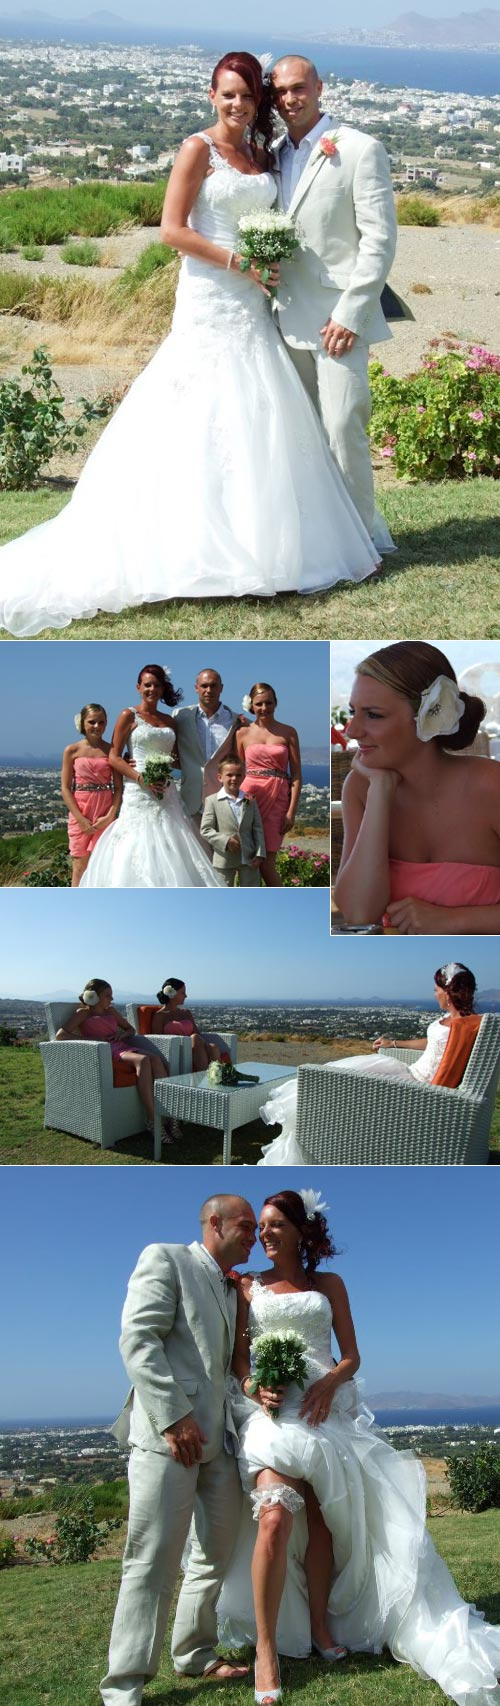 Emma & Rich - real wedding in Kos, Greece, 2010